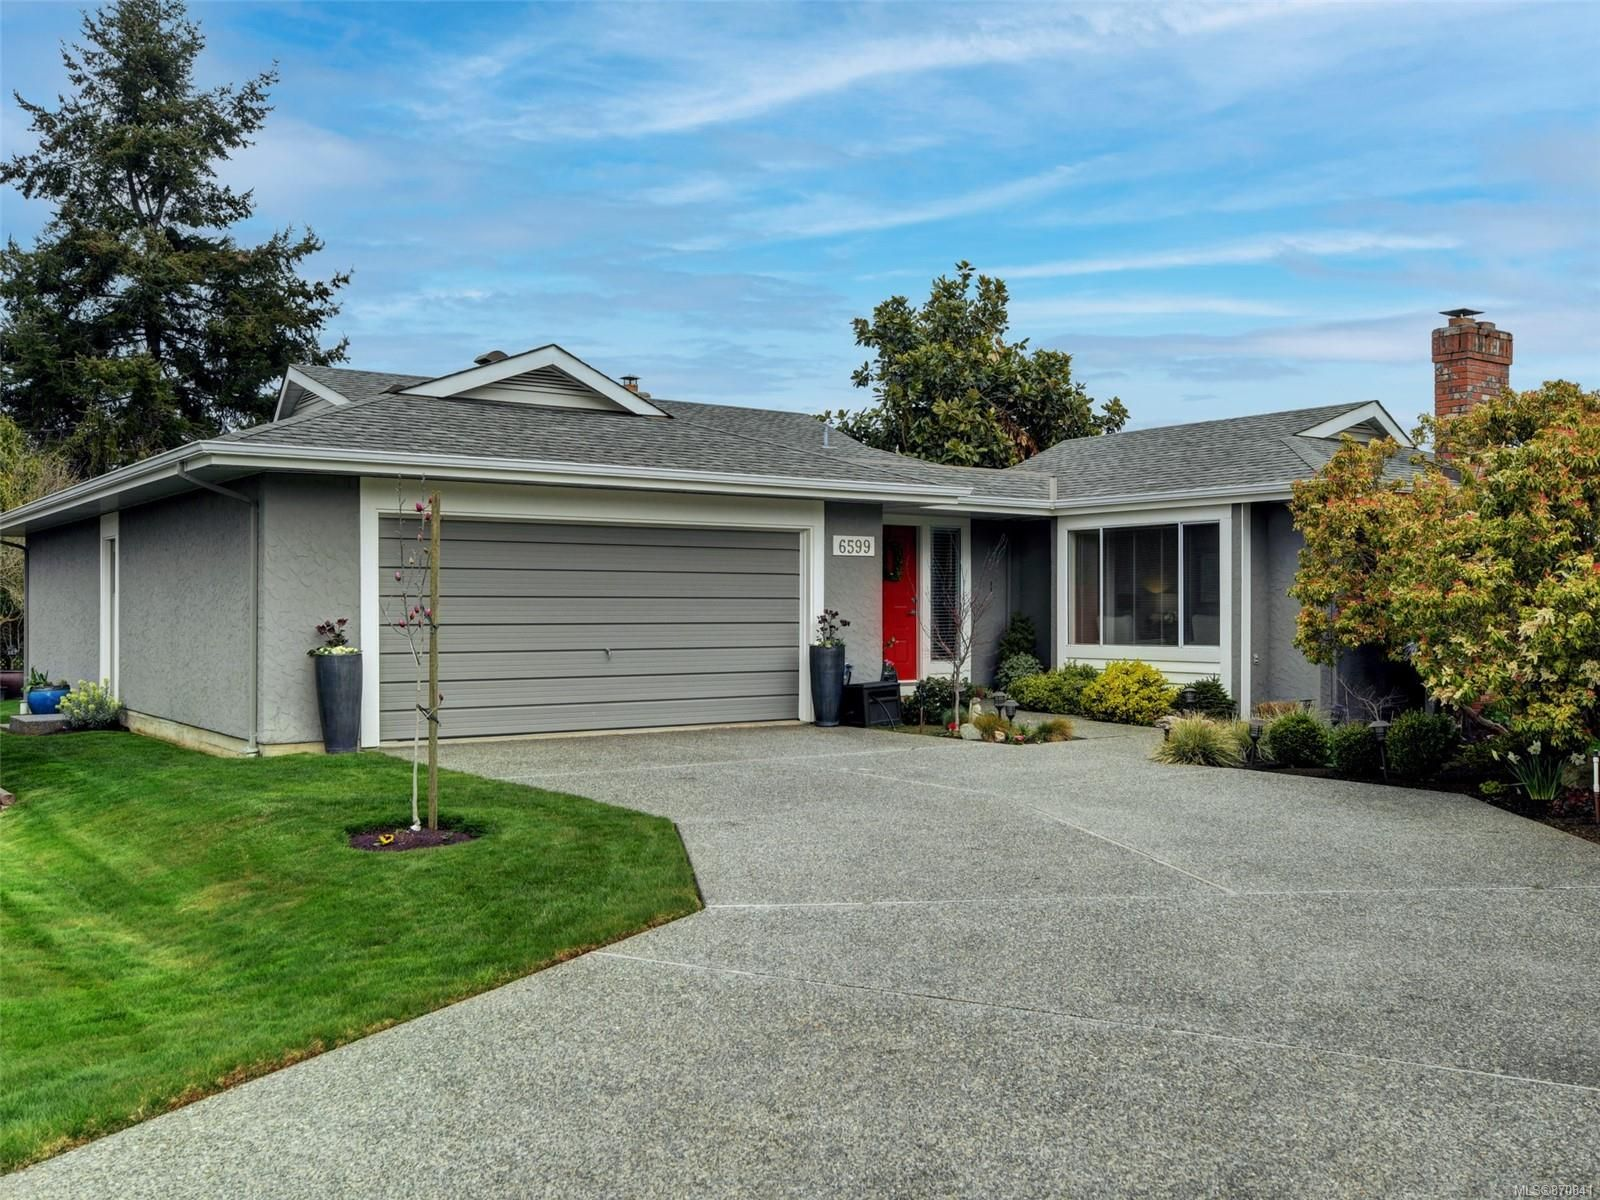 Main Photo: 6599 Roza Vista Pl in : CS Tanner House for sale (Central Saanich)  : MLS®# 870841